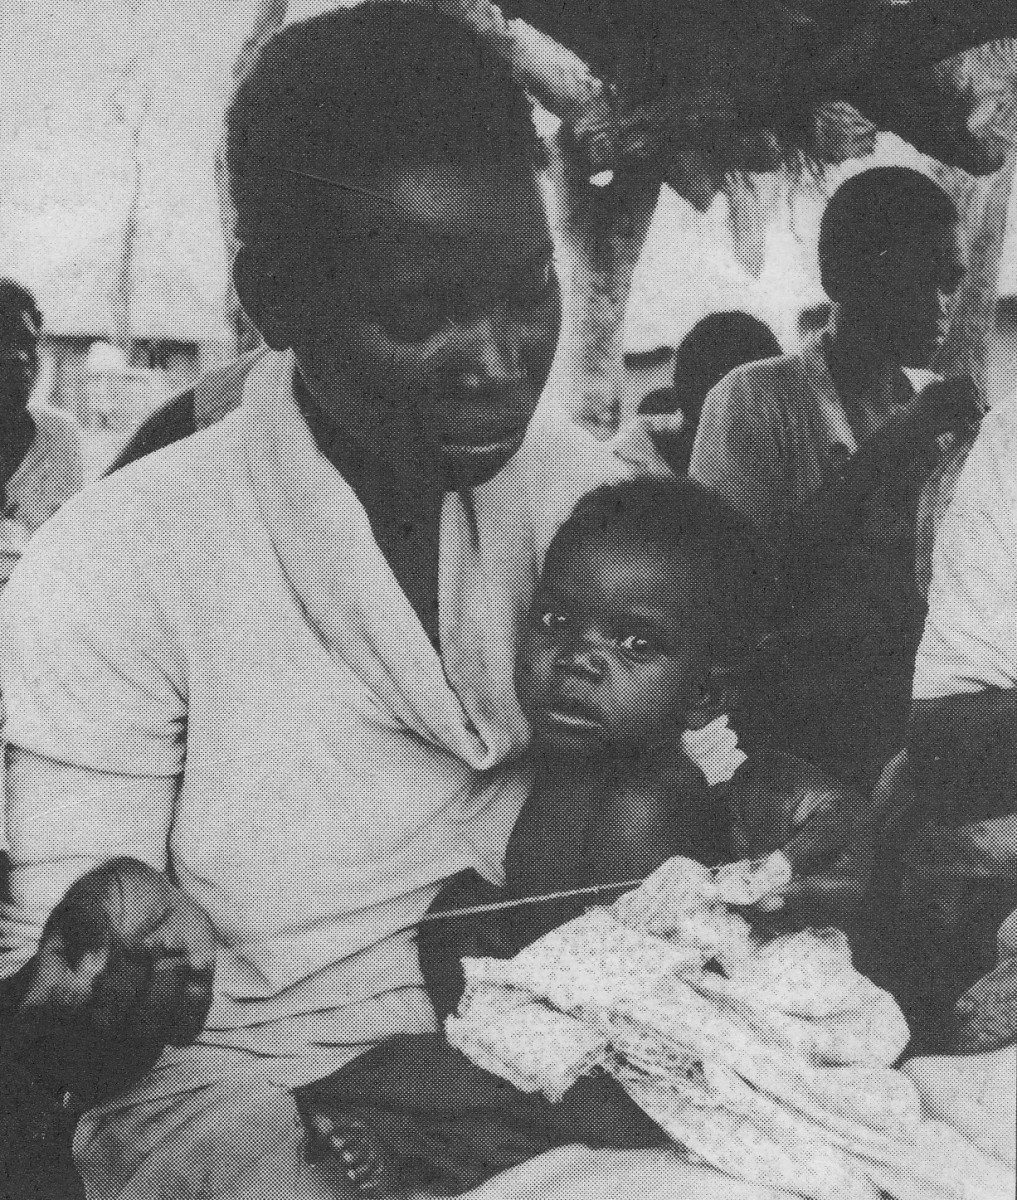 Women and Children's Health under Apartheid